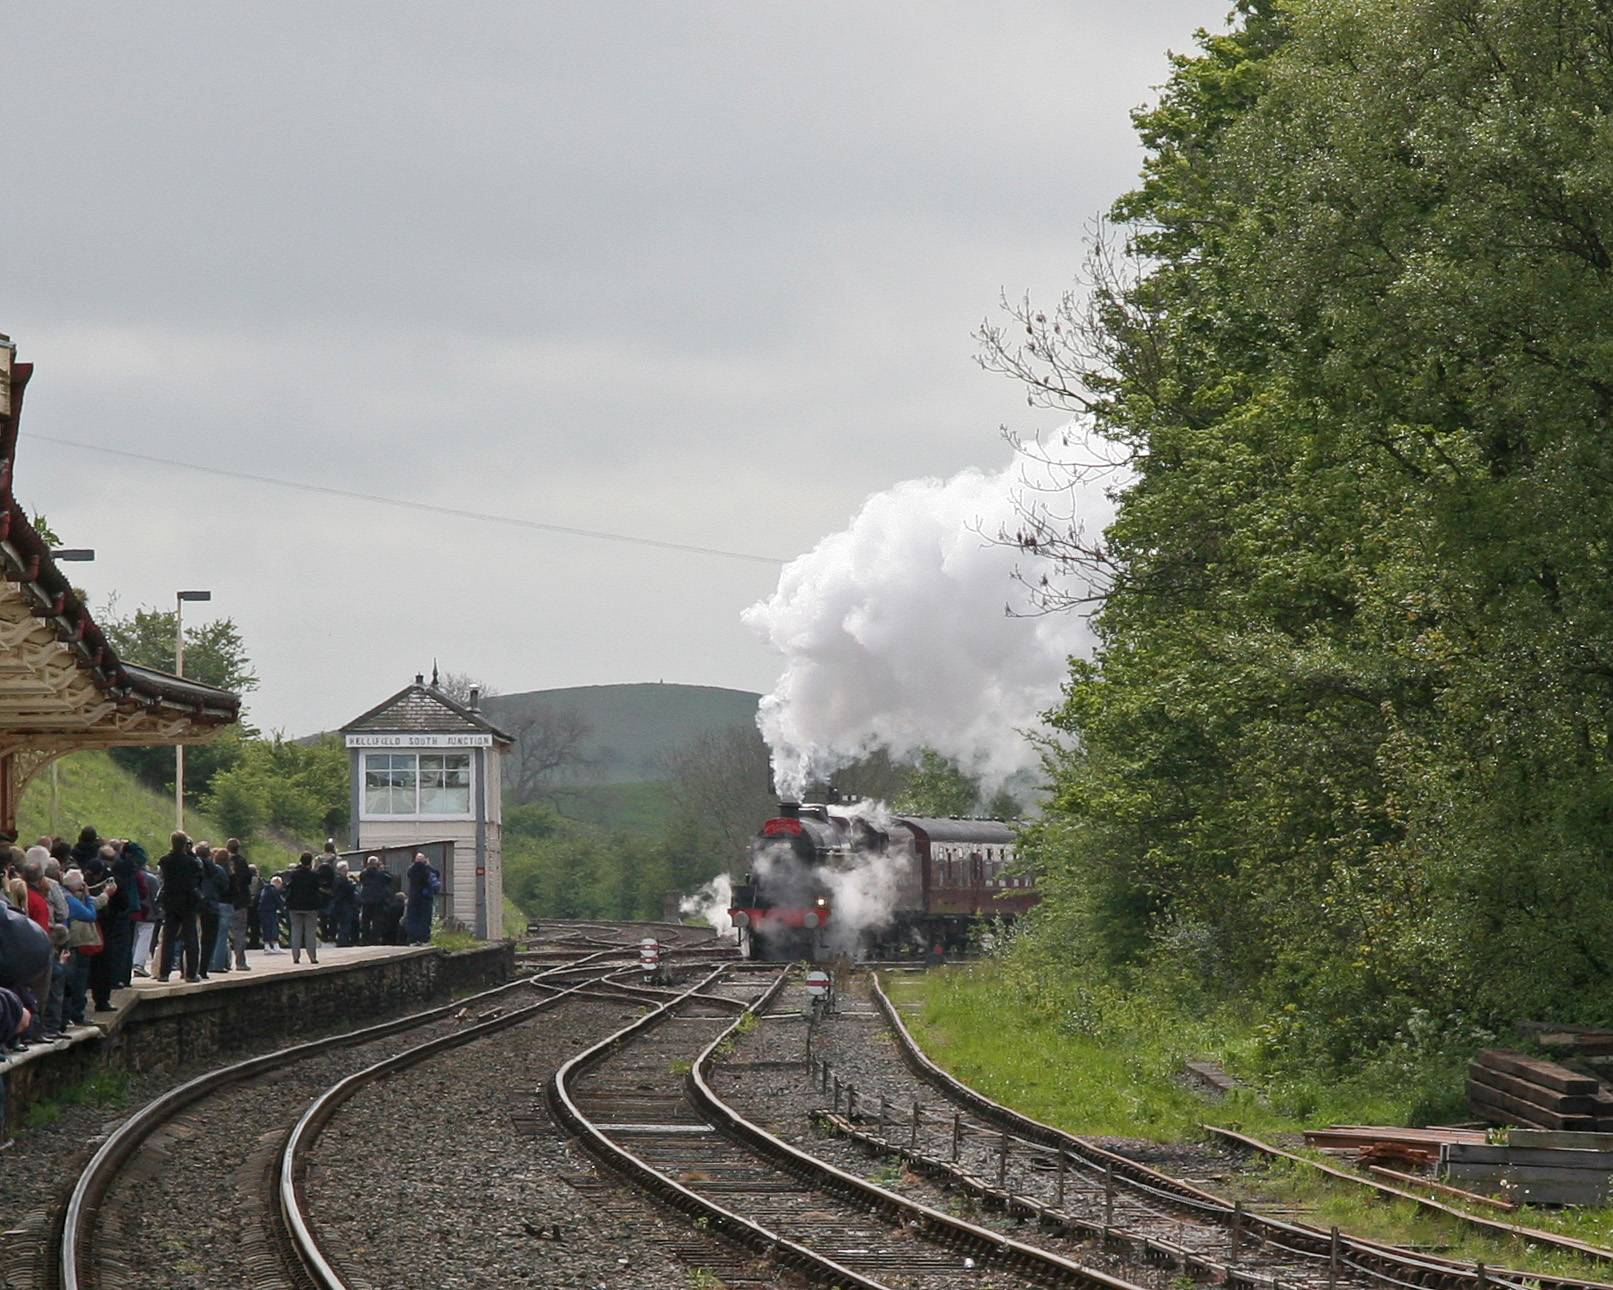 Leander draws into Hellifield